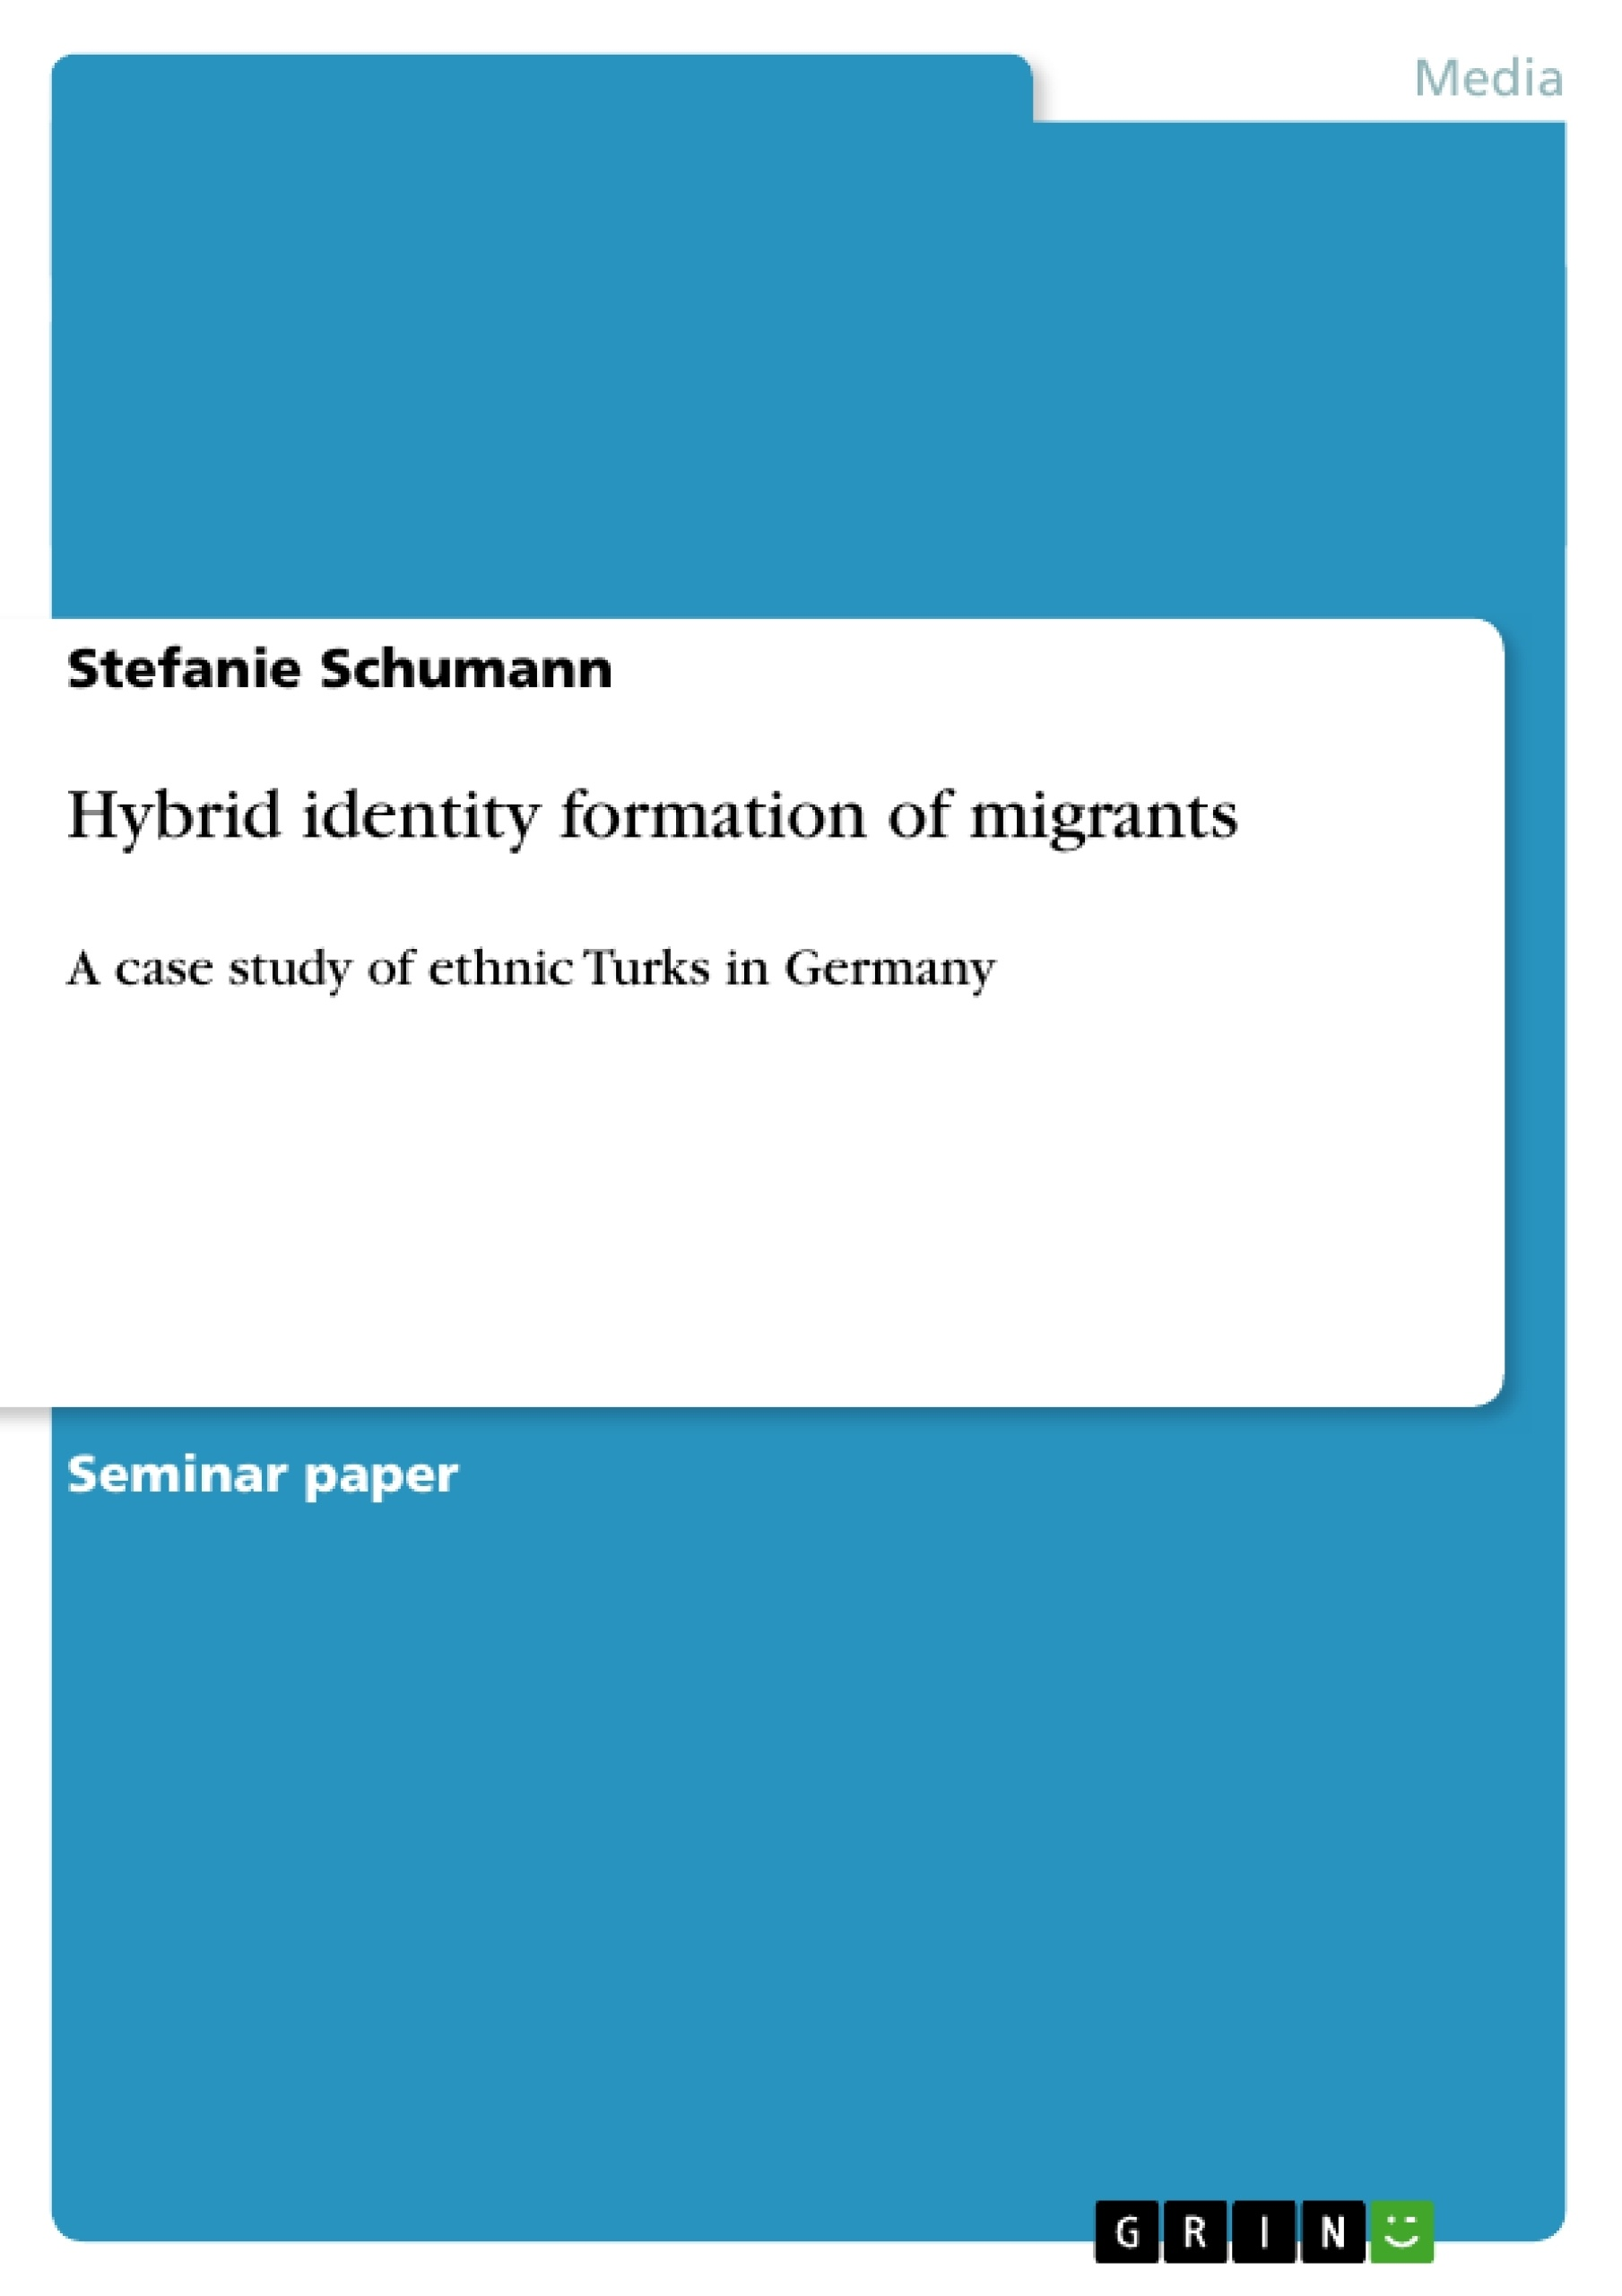 Title: Hybrid identity formation of migrants